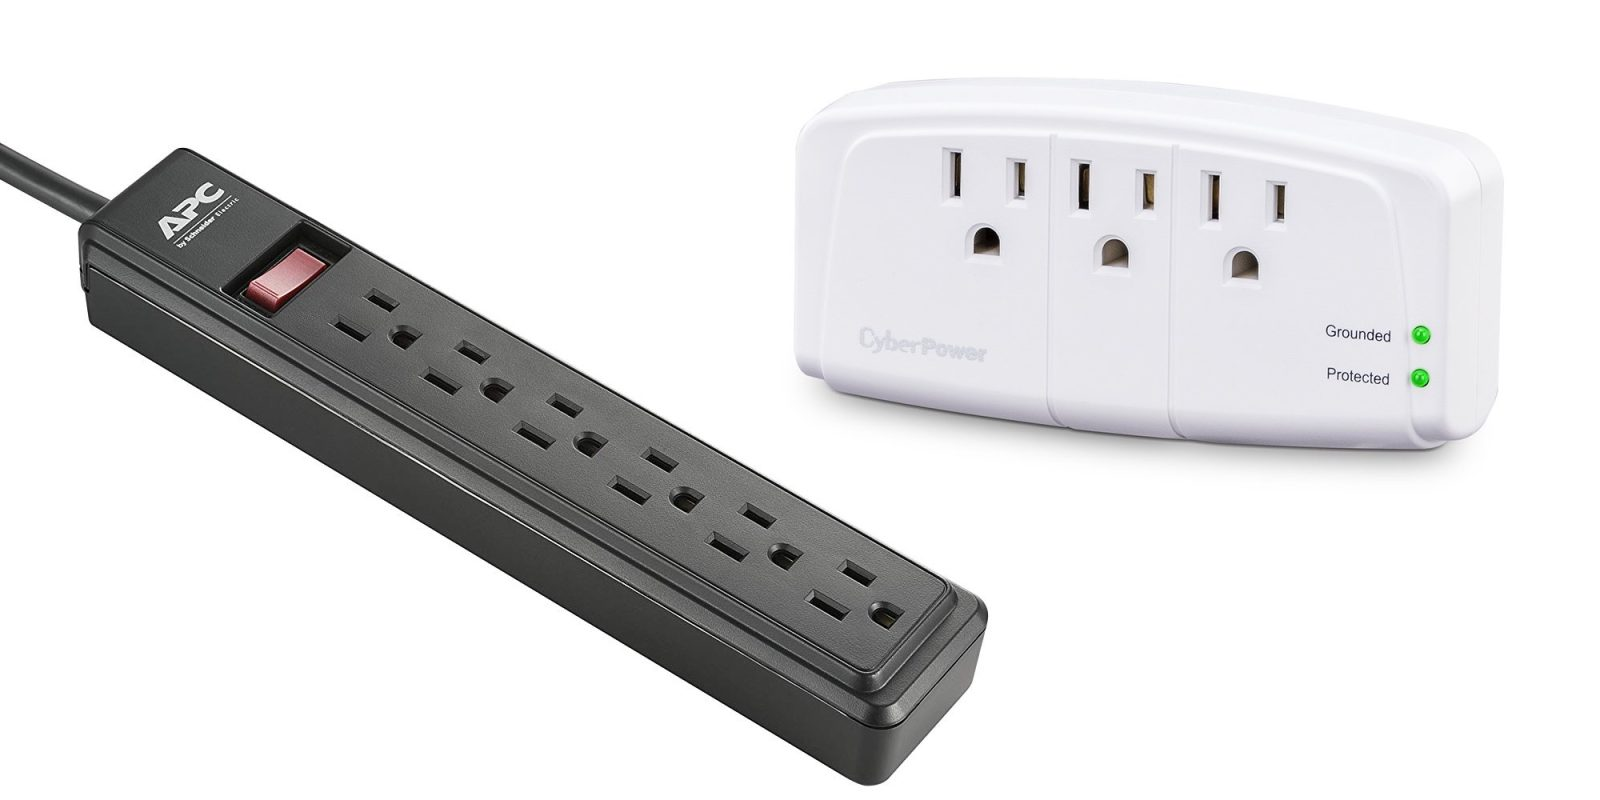 Just $6.50 gets you CyberPower's Essential 900J Surge Protector Wall Tap, more